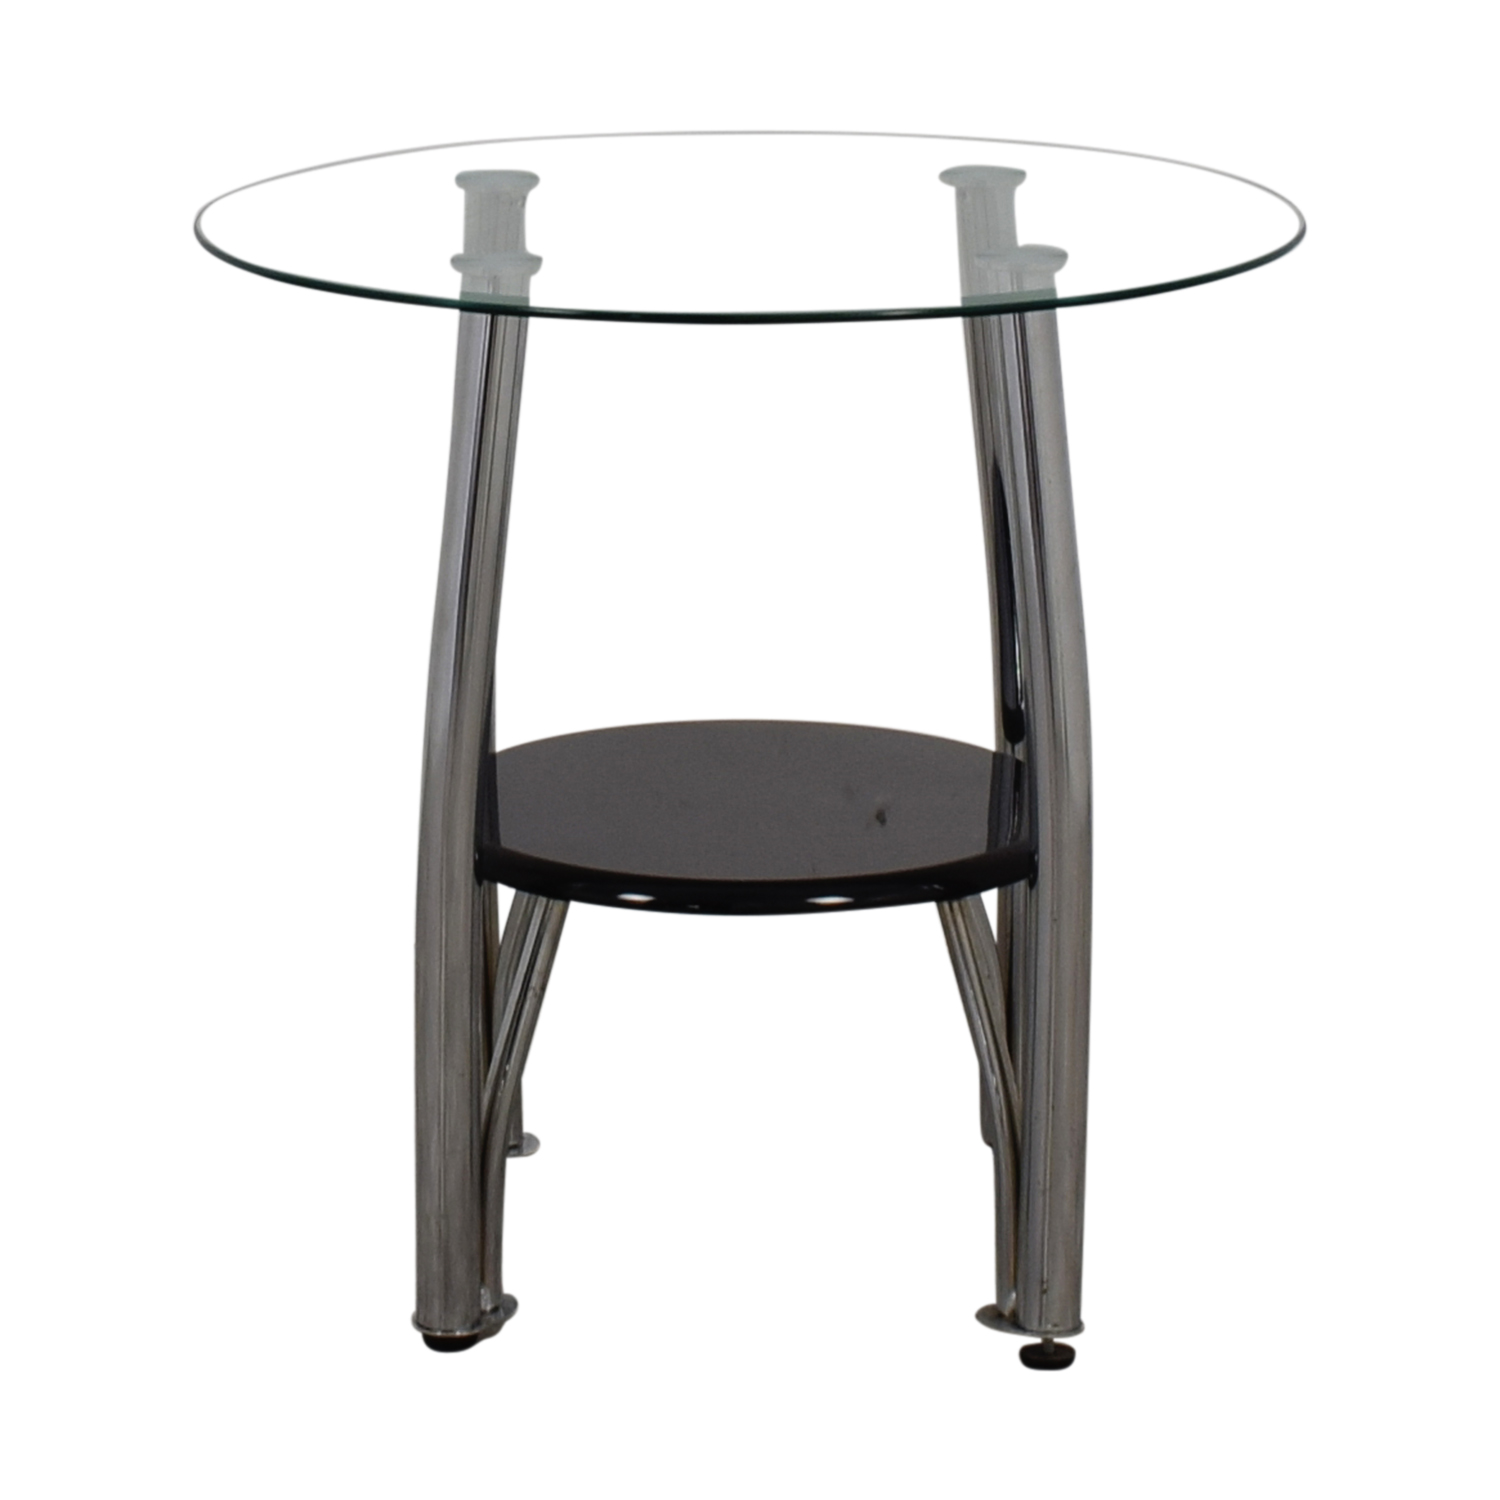 Ashley Furniture Ashley Furniture Round Glass and Black End Table